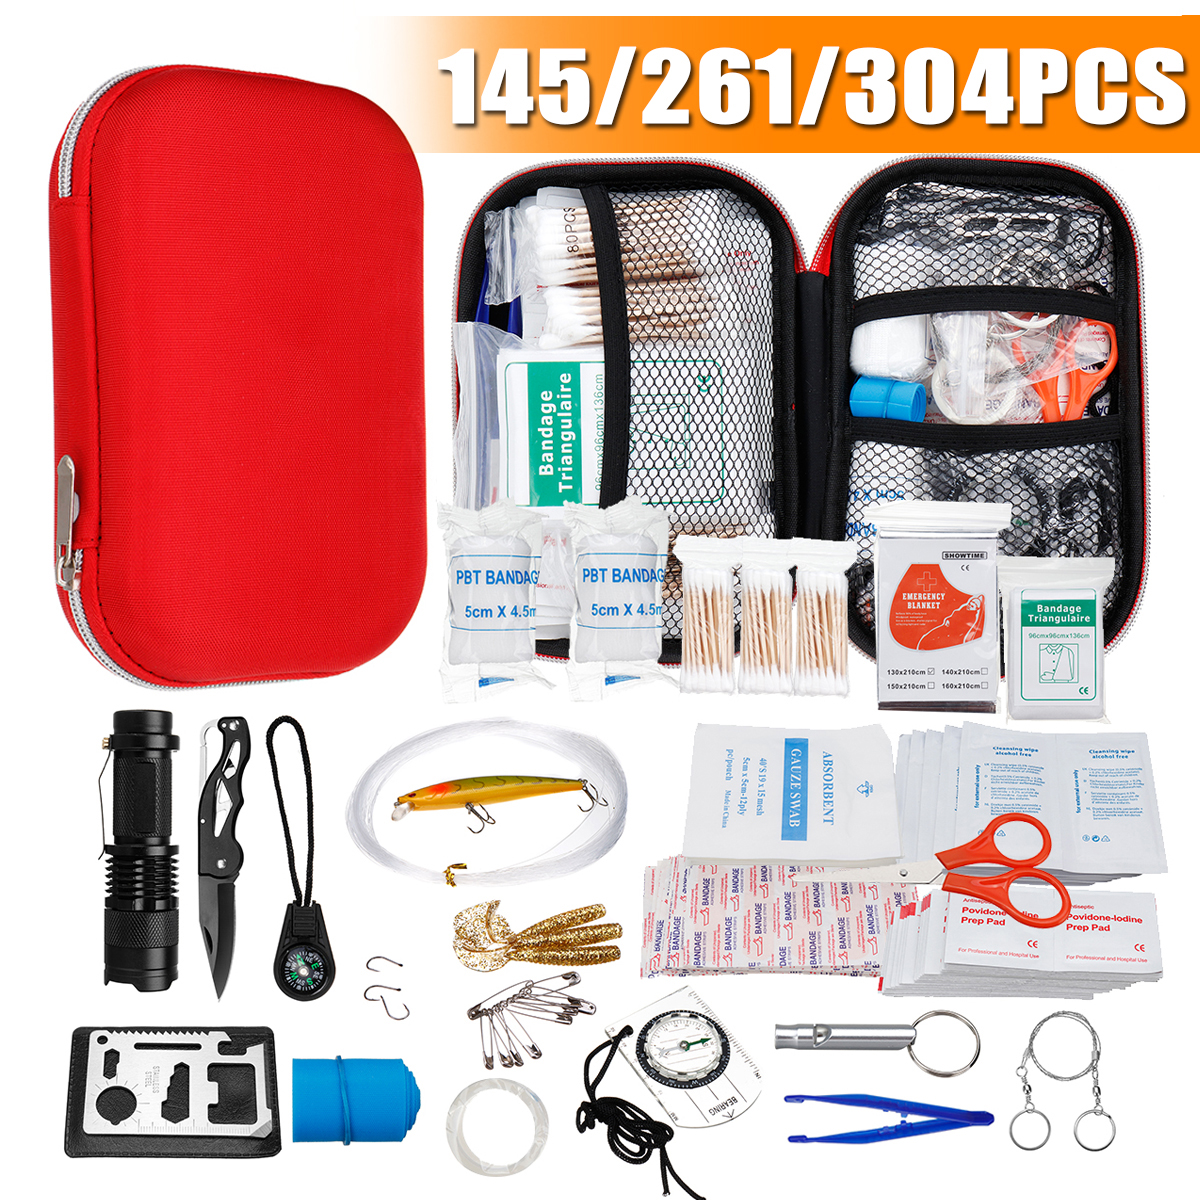 145/261/304 Pcs Portable First Aid Kit Waterproof Emergency Medical Survival Box Bag Kit for Car Outdoor Travel Camping Home 145/261/304 Pcs Portable First Aid Kit Waterproof Emergency Medical Survival Box Bag Kit for Car Outdoor Travel Camping Home